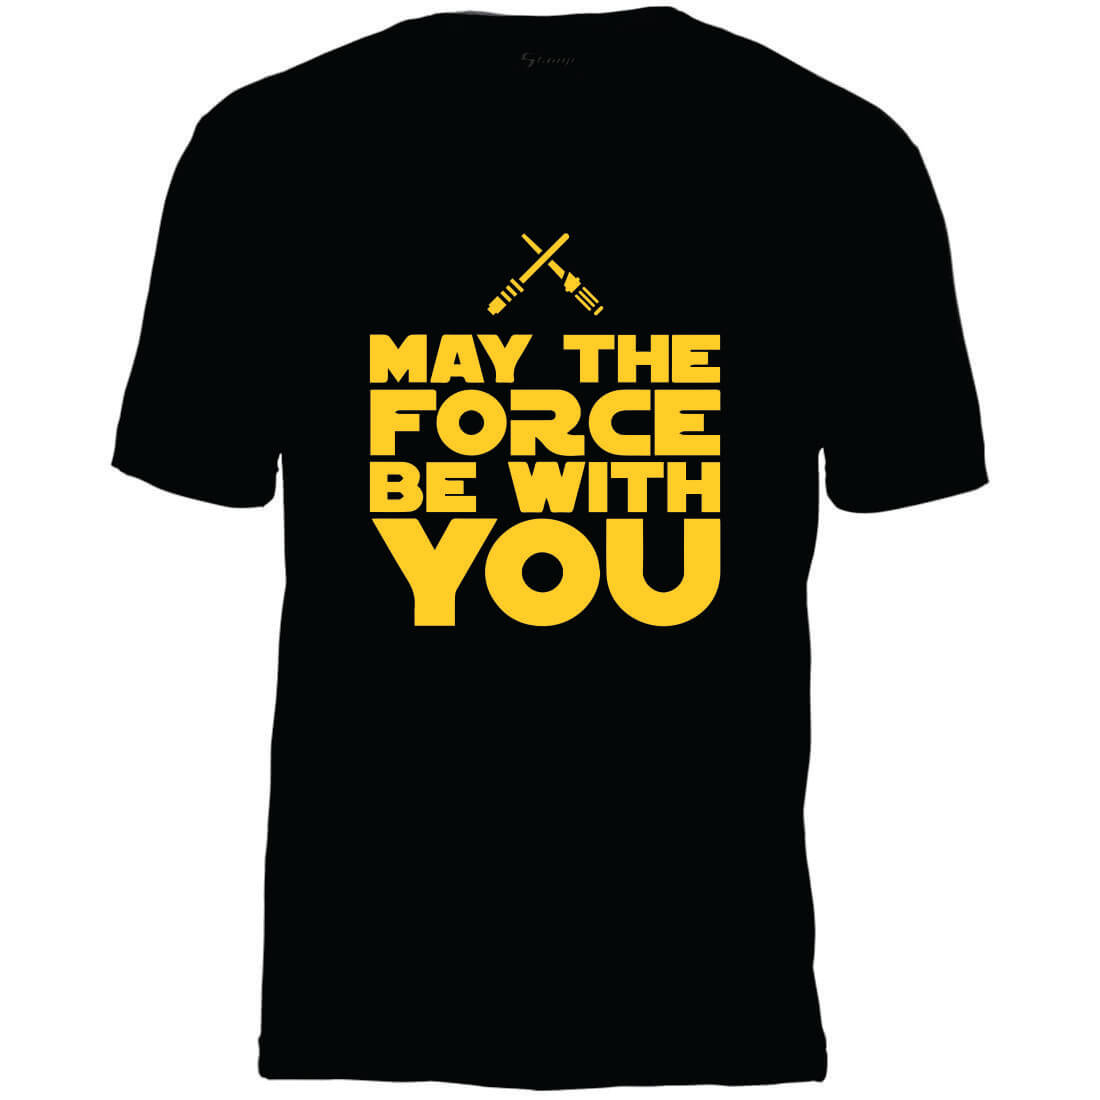 Camiseta Masculina Adulto May The Force Be With You